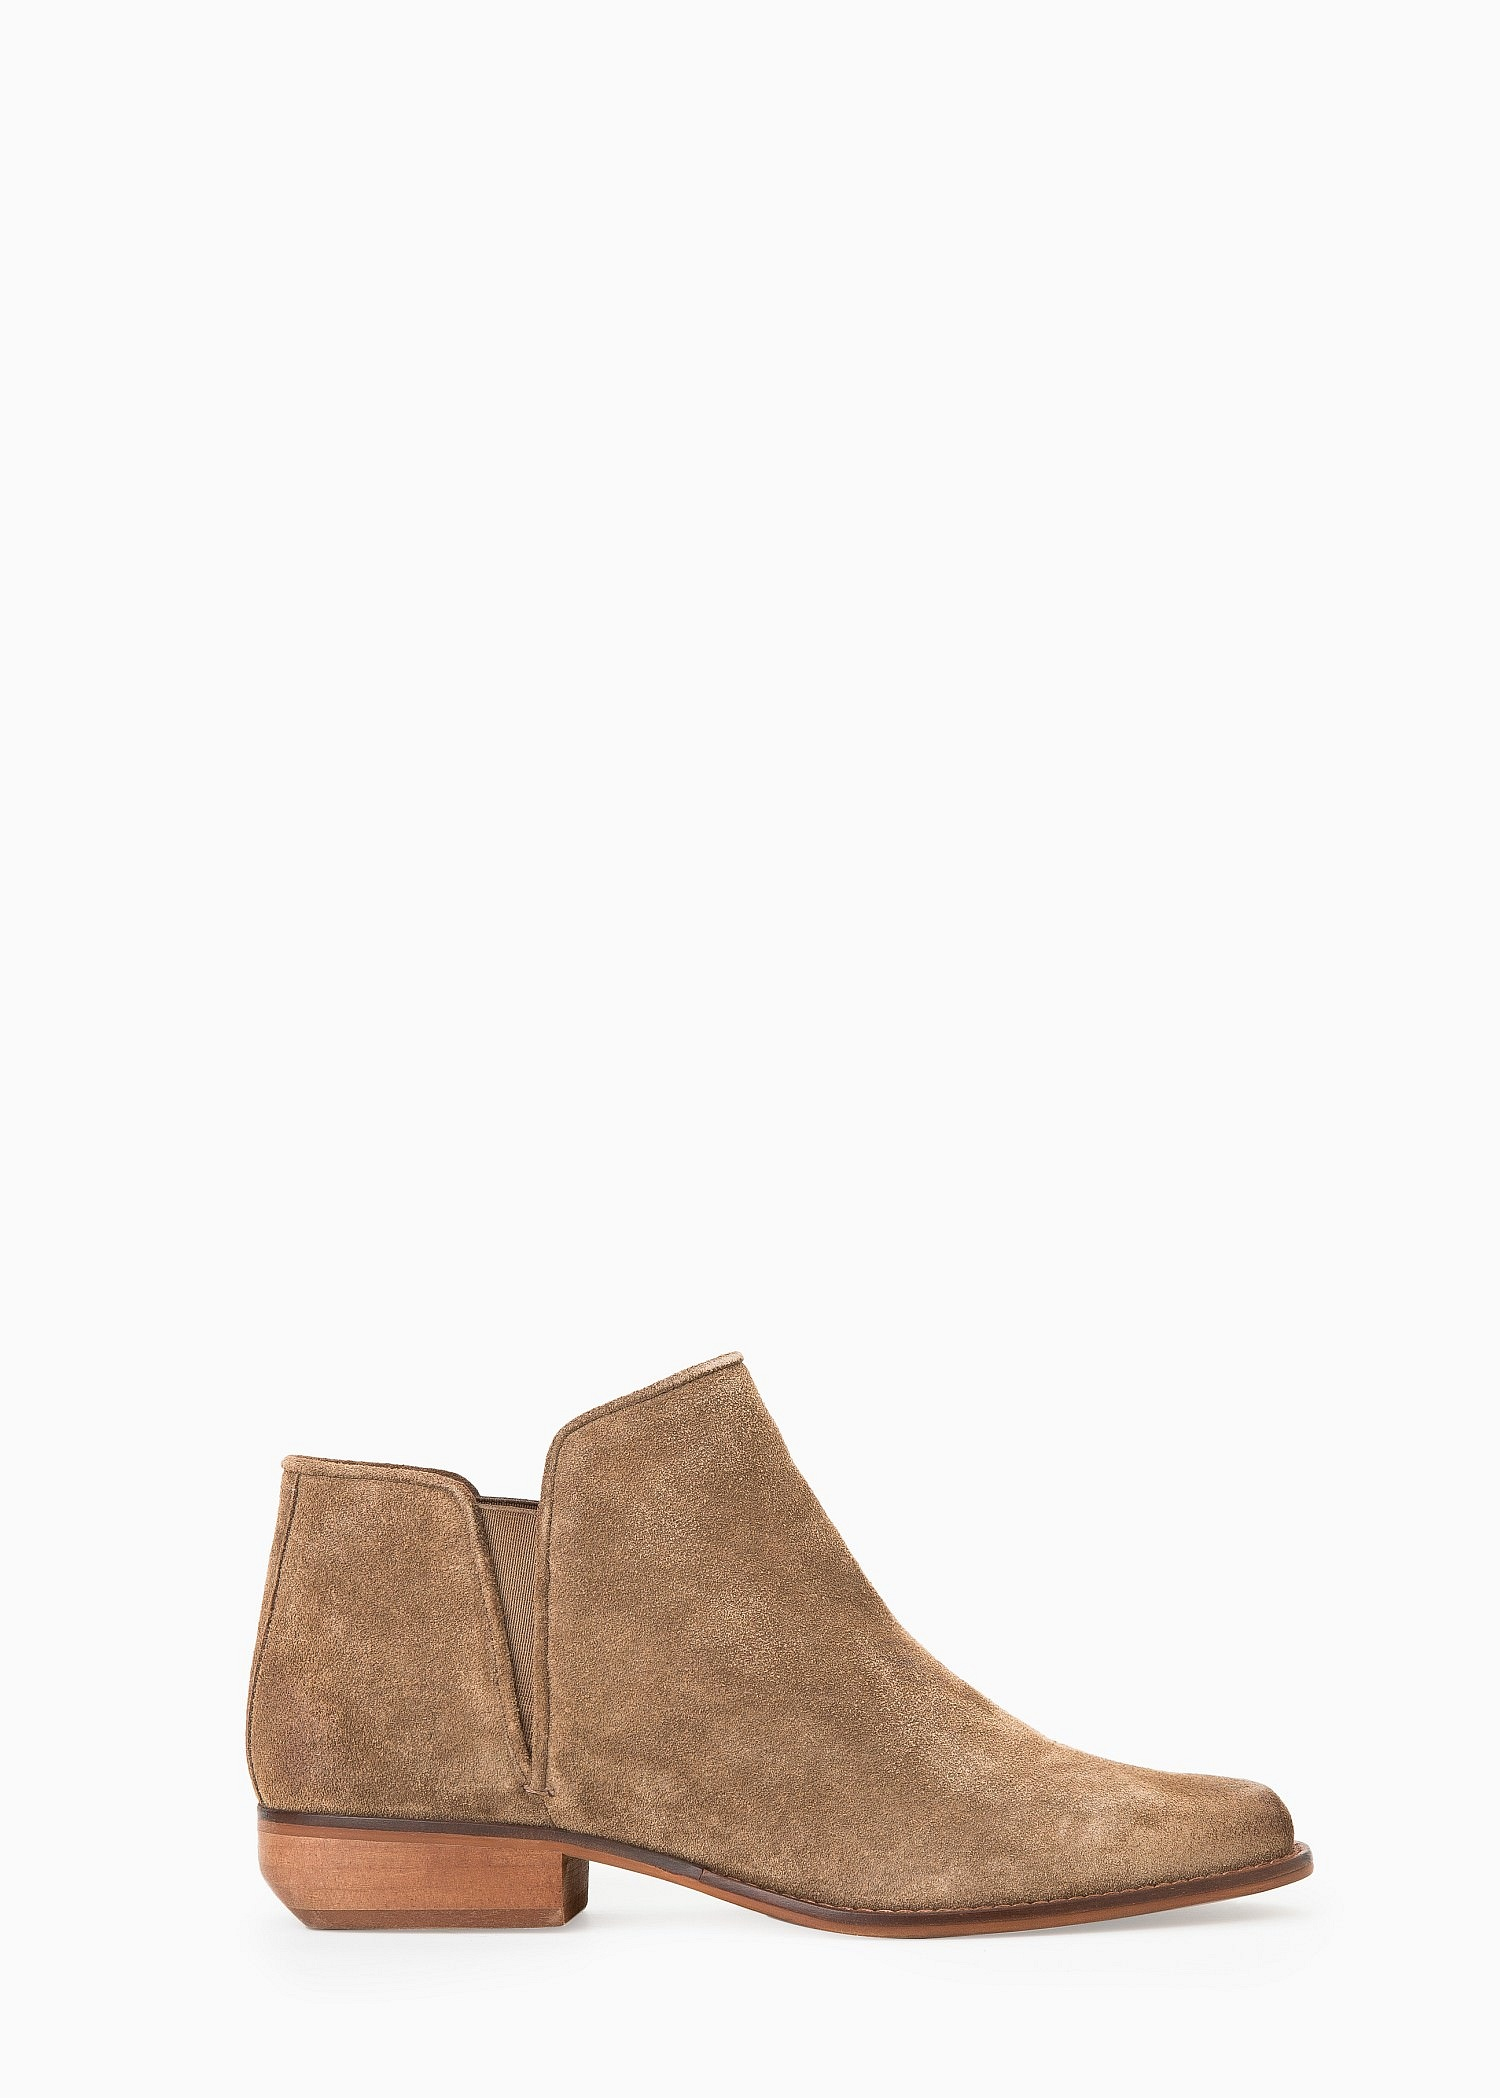 76101611667b Lyst - Mango Flat Suede Ankle Boots in Natural